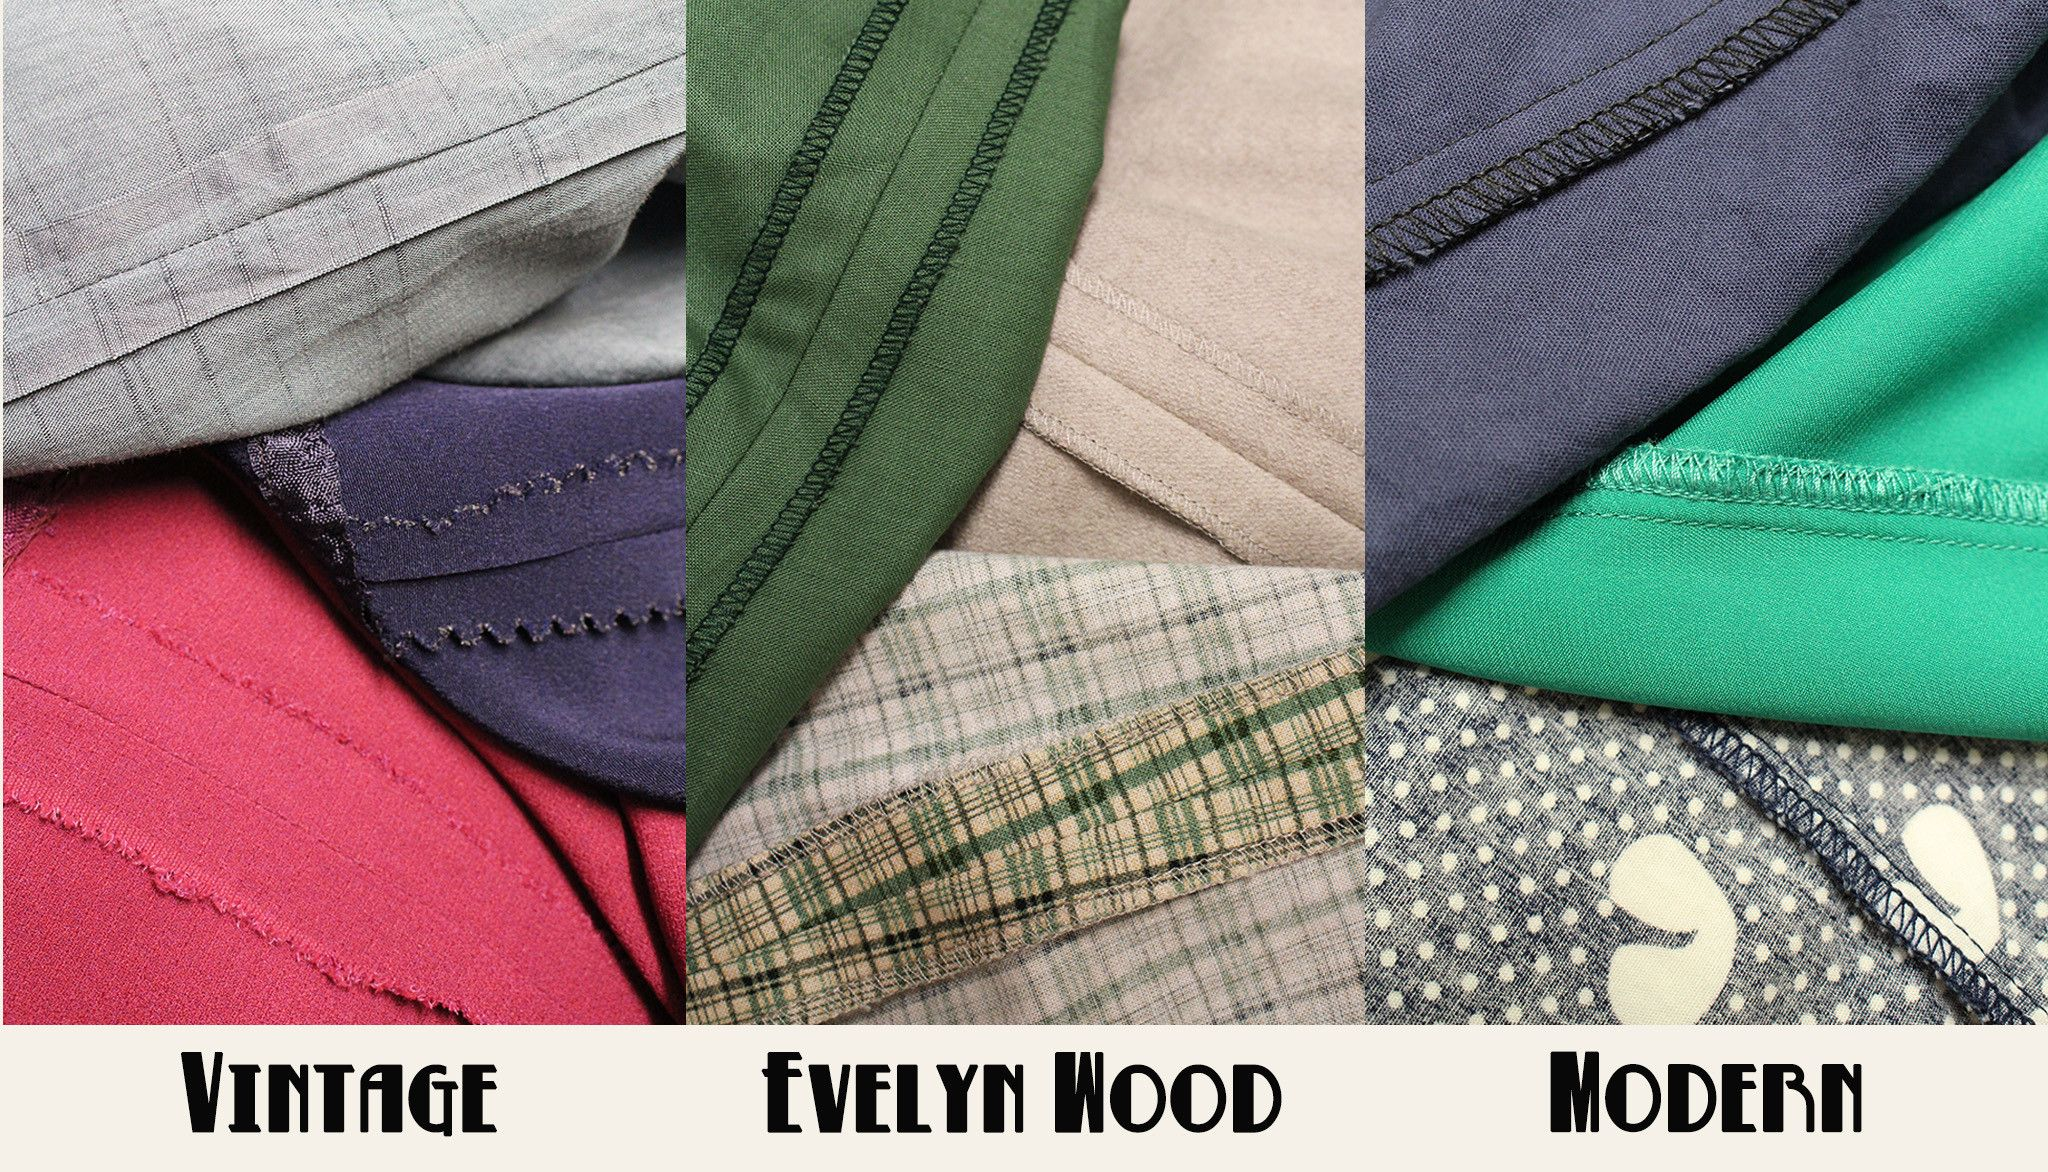 Everything You Thought Vintage Reproduction Clothing Should Be - Evelyn Wood. What was different about vintage clothes making